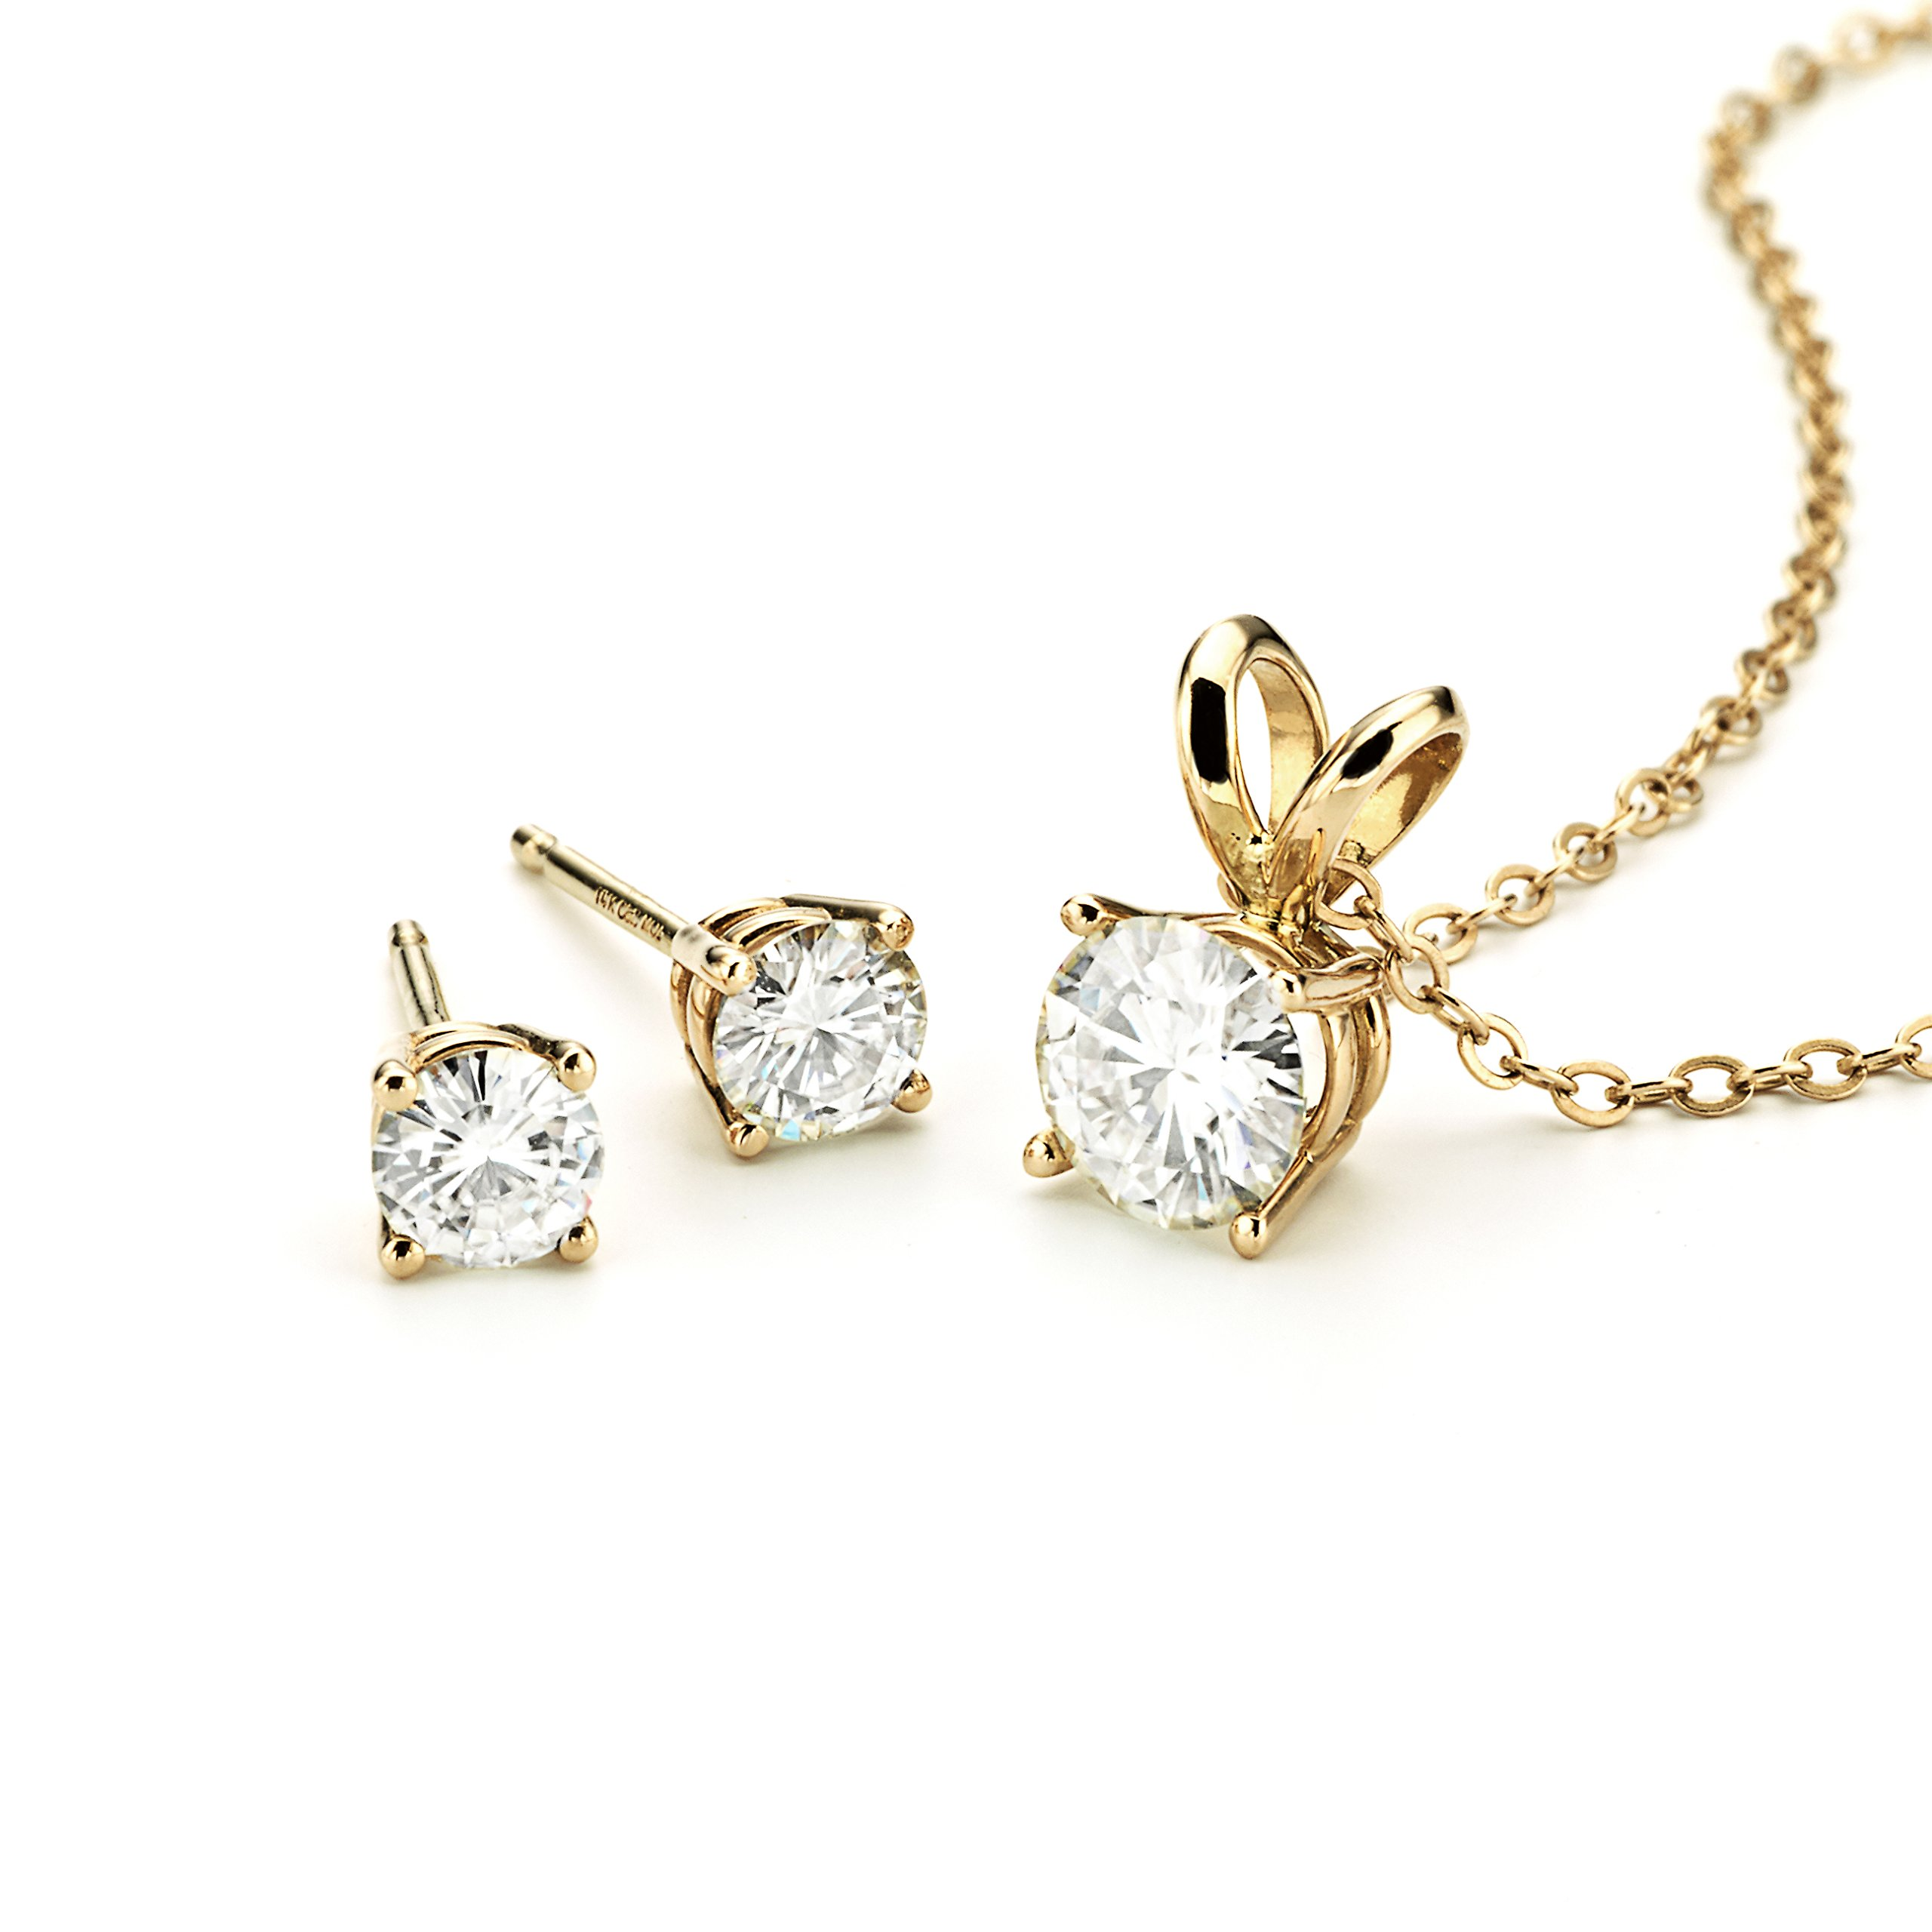 Forever Classic Yellow Gold Moissanite Earrings and Pendant Necklace Set By Charles & Colvard